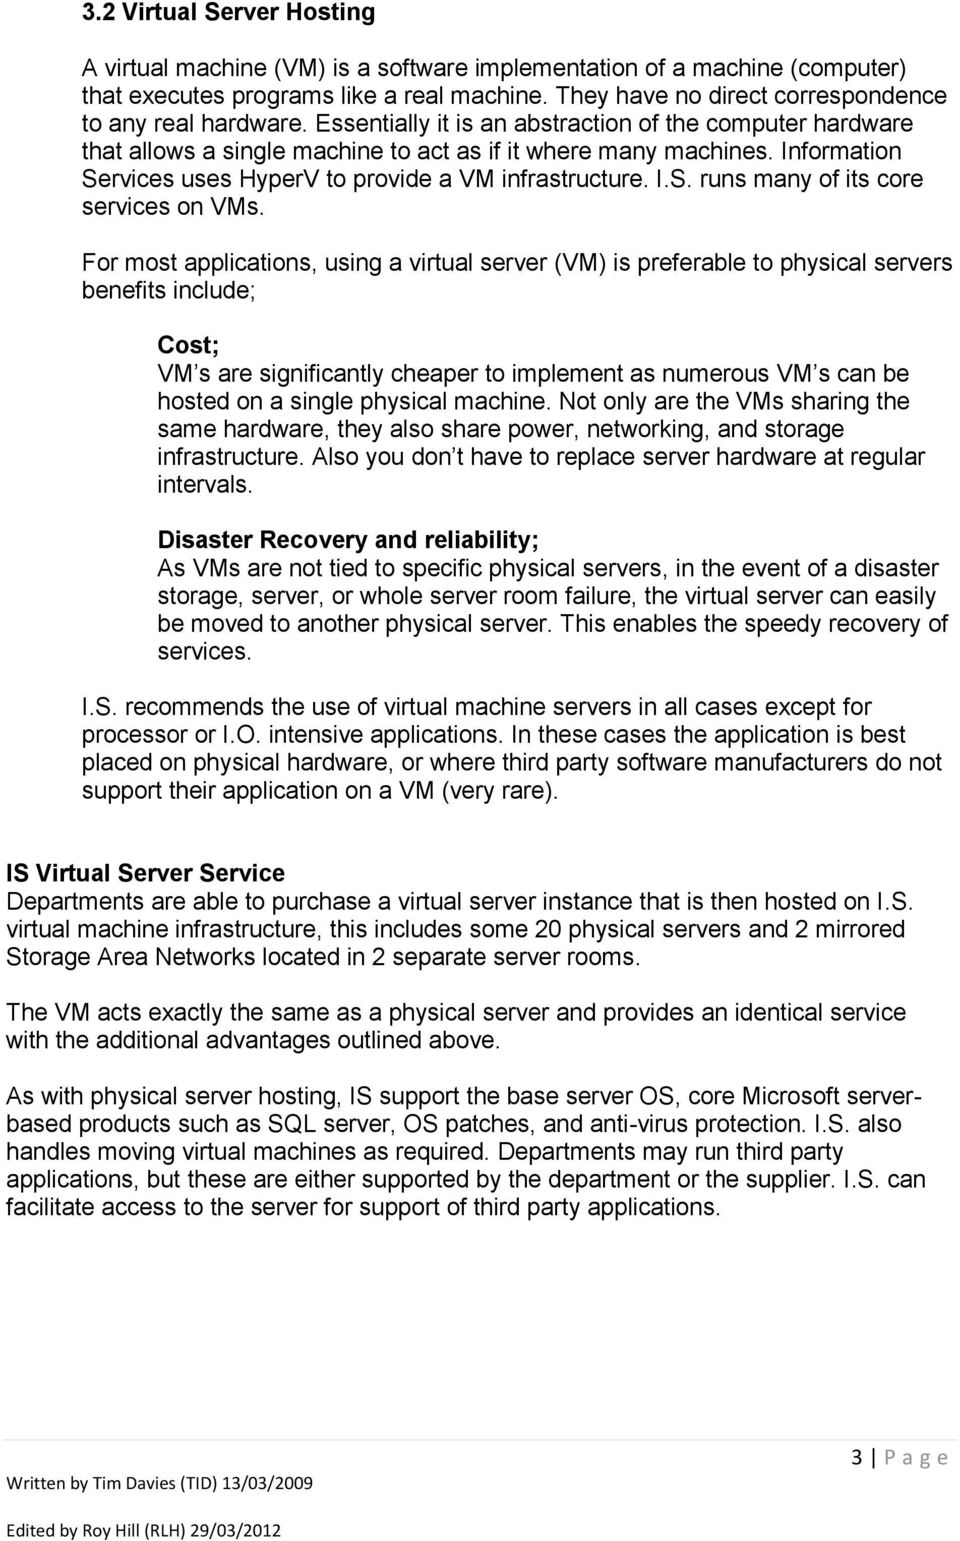 Information Services uses HyperV to provide a VM infrastructure. I.S. runs many of its core services on VMs.